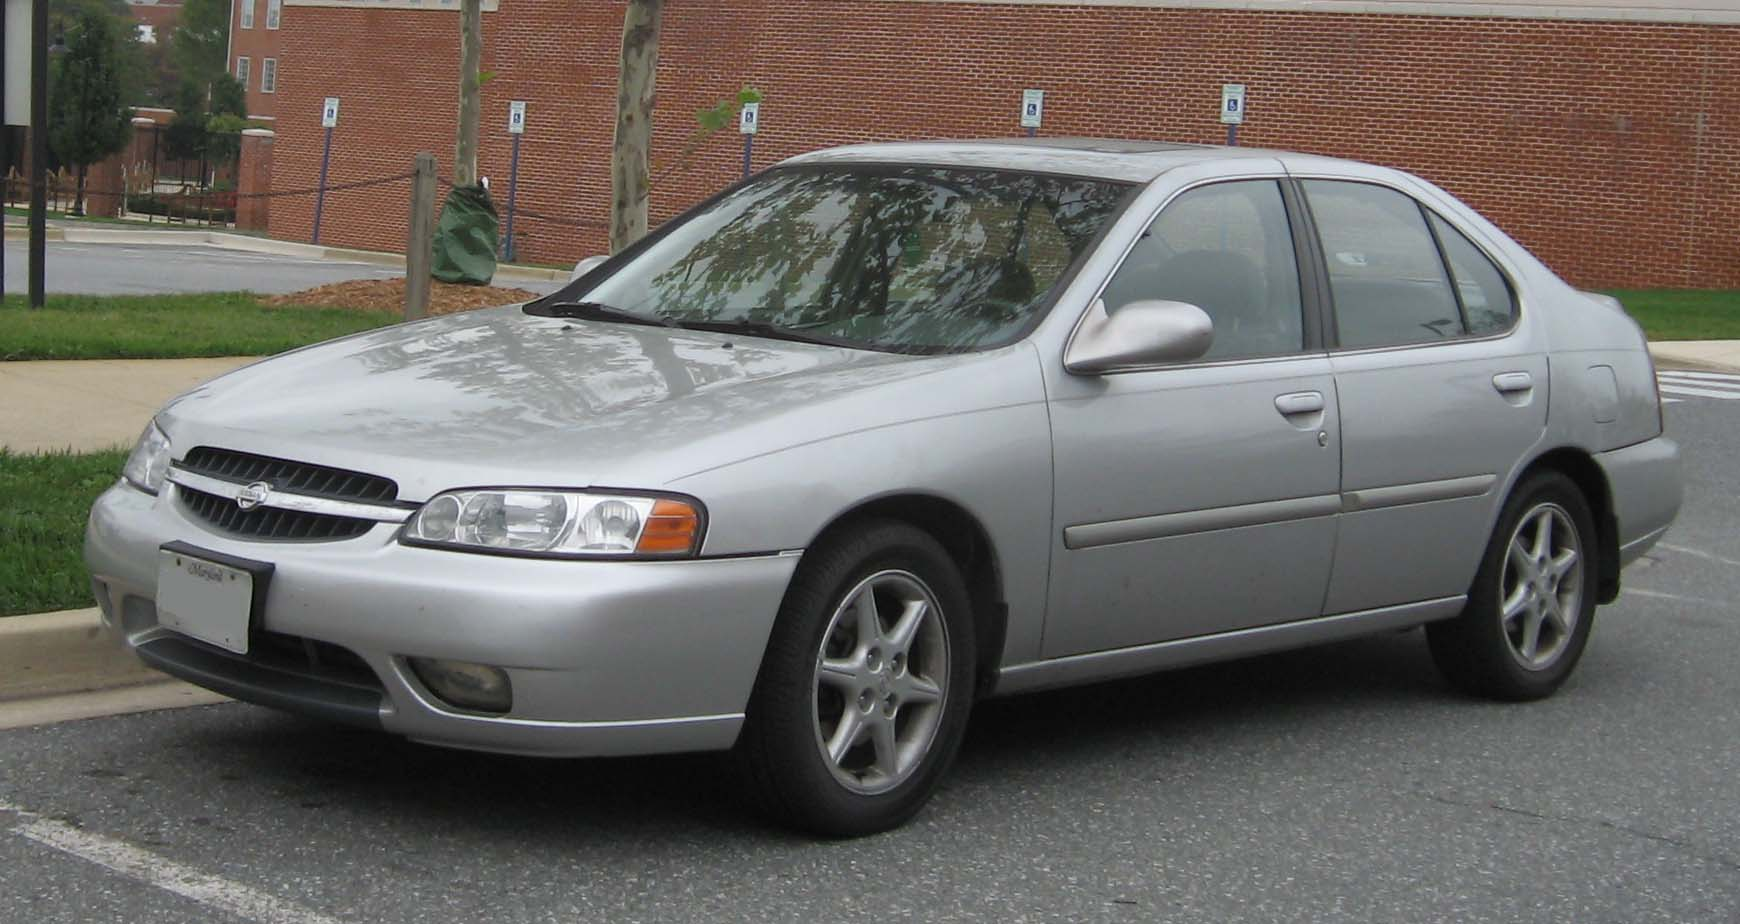 1998 Nissan Acura Altima Gxe Information And Photos Momentcar 1740x924